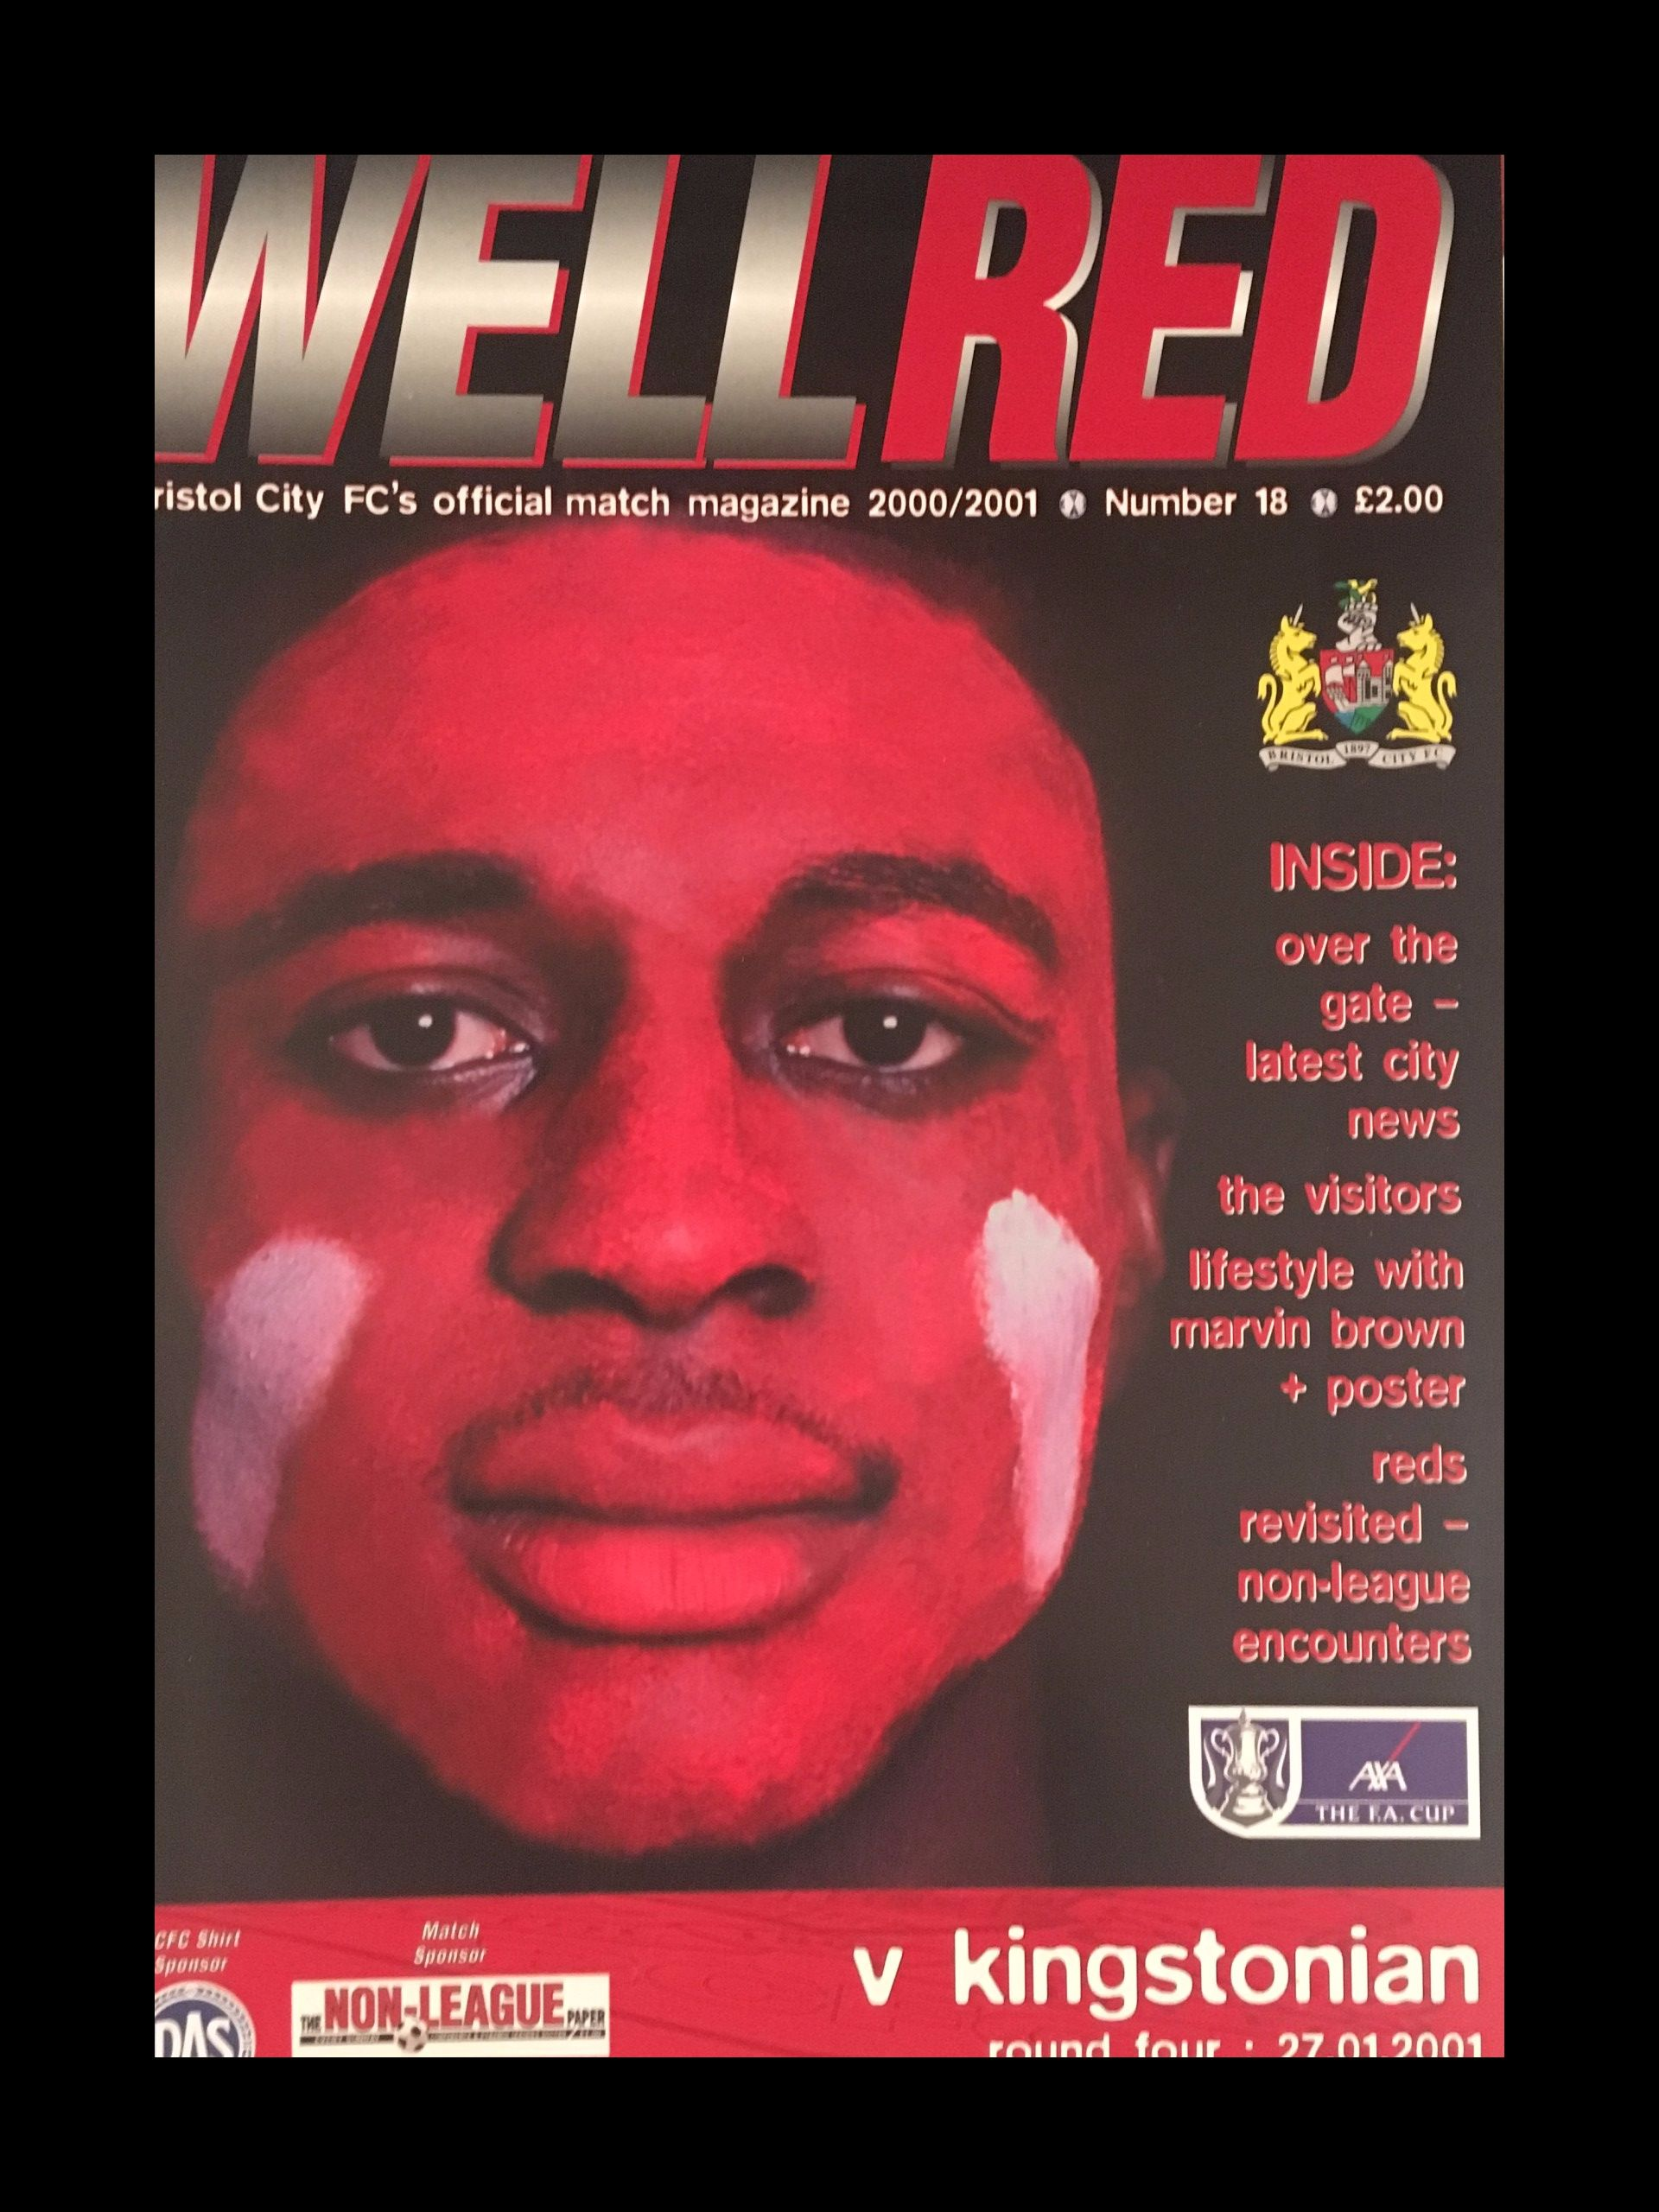 Bristol City v Kingstonian 27-01-2001 Programme